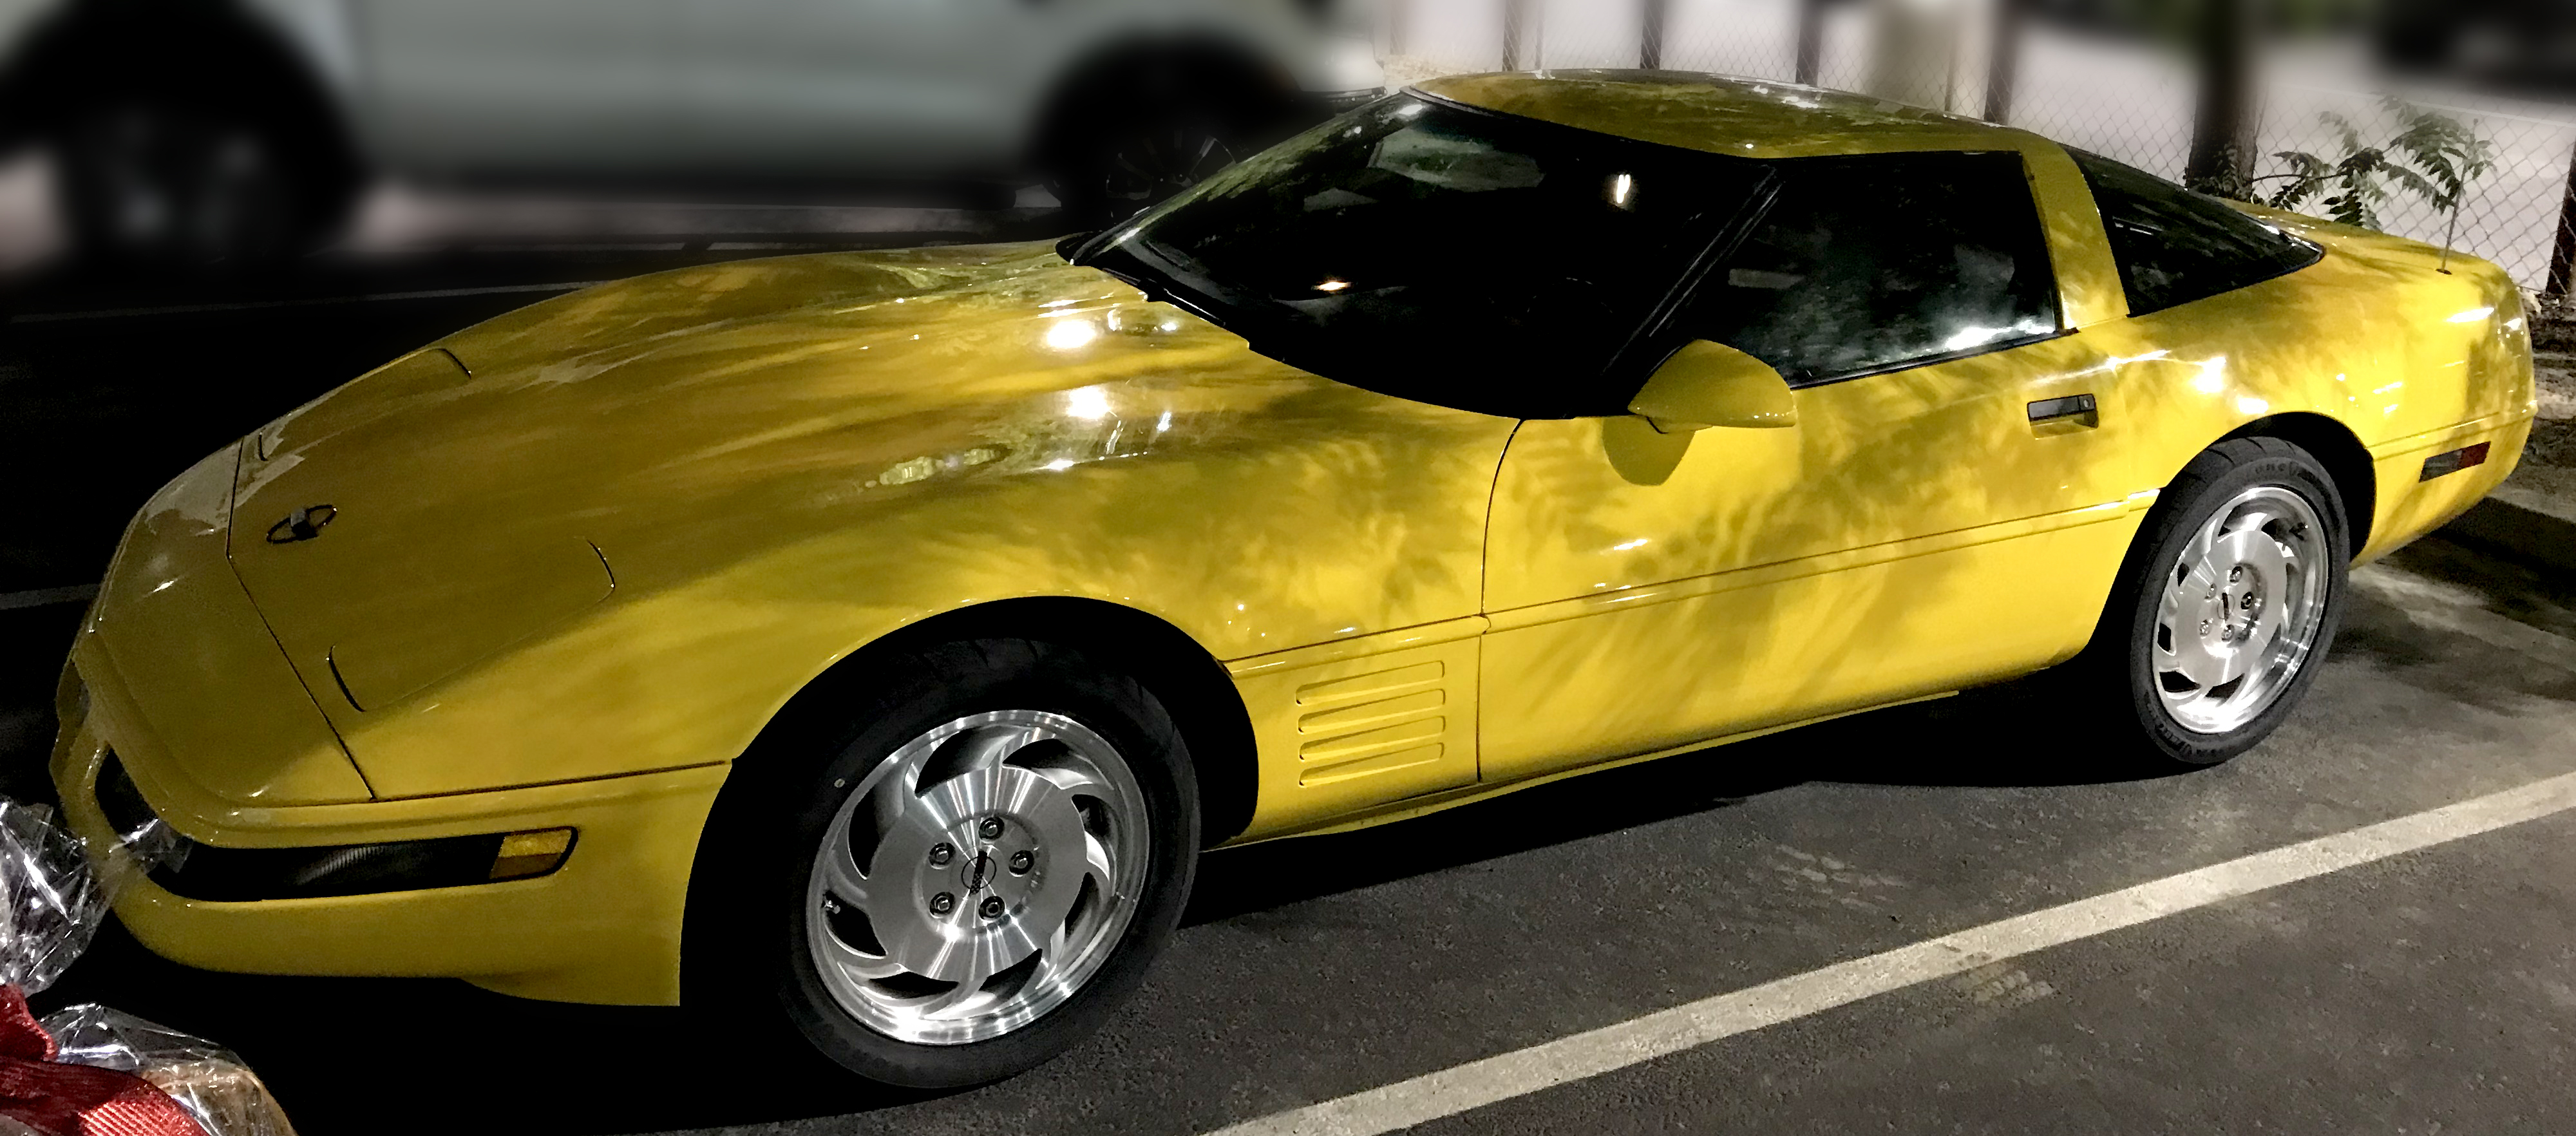 For Sale – 1994 Corvette Coupe